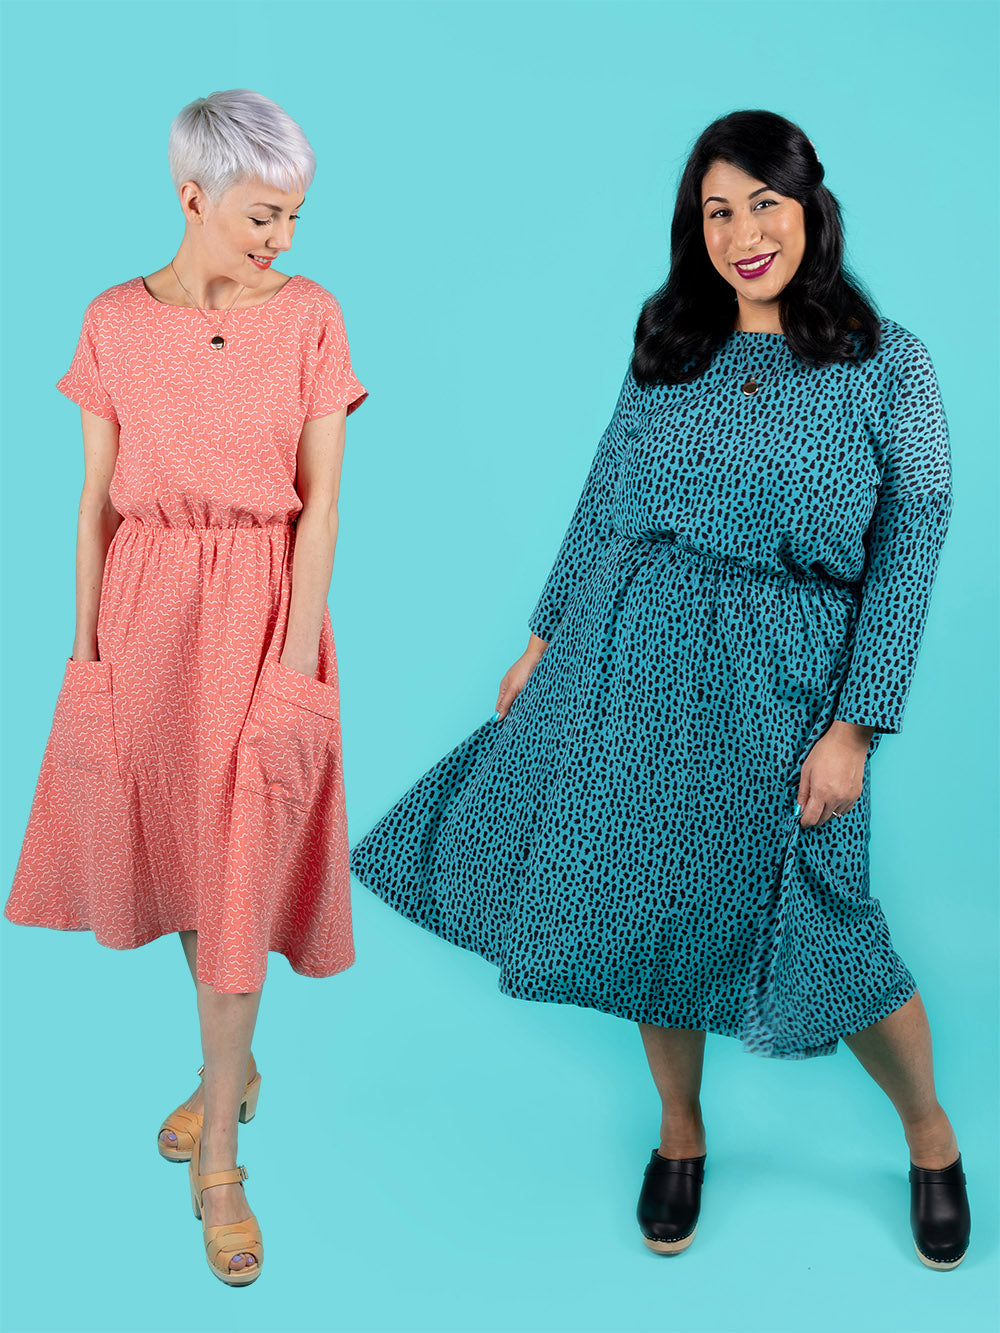 Learn to sew an easy dress with Tilly and the Buttons' online workshop